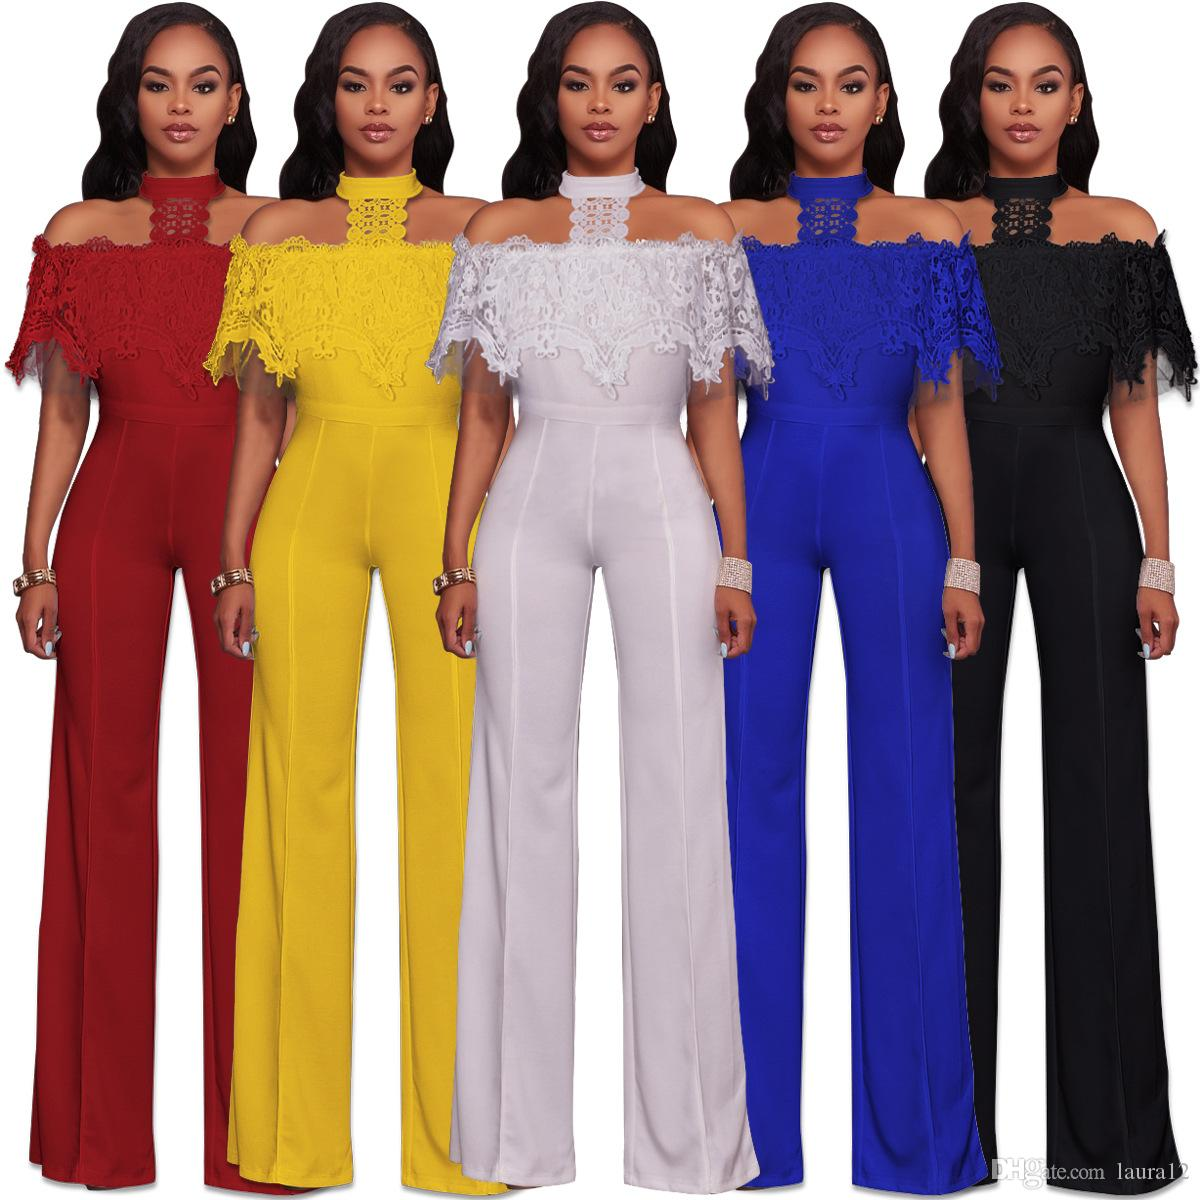 4a694f46326 2019 2018 Trendy Fashion Women Women S Jumpsuits   Rompers Sexy Halter Neck  Lace Short Sleeves Wide Legged Pants Suits S XXL From Laura12